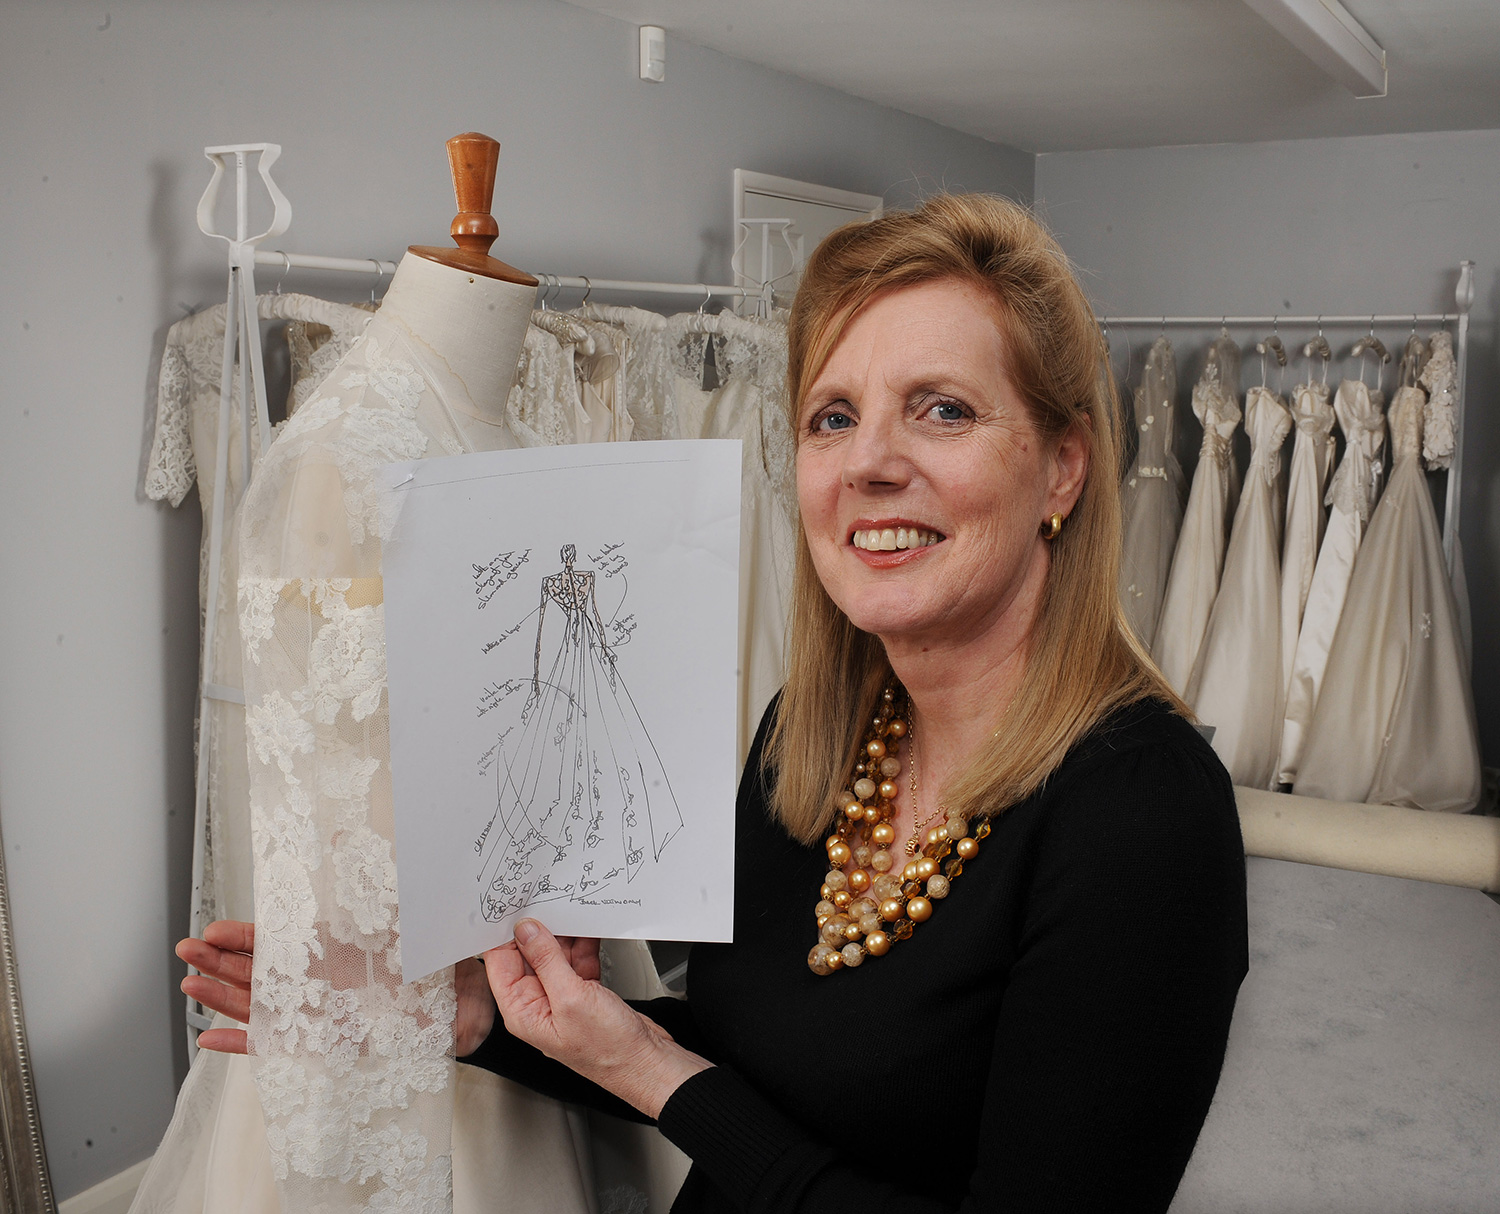 royal stitch up designer suing luxury fashion brand claiming they used her ideas to create kate middletons wedding dress used designer wedding dresses CHRISTINE KENDALL HAUTE COUTURE WEDDING DRESS DESIGNER CLAIMS THAT KATE MIDDLETON S WEDDING DRESS WAS HER DESIGN